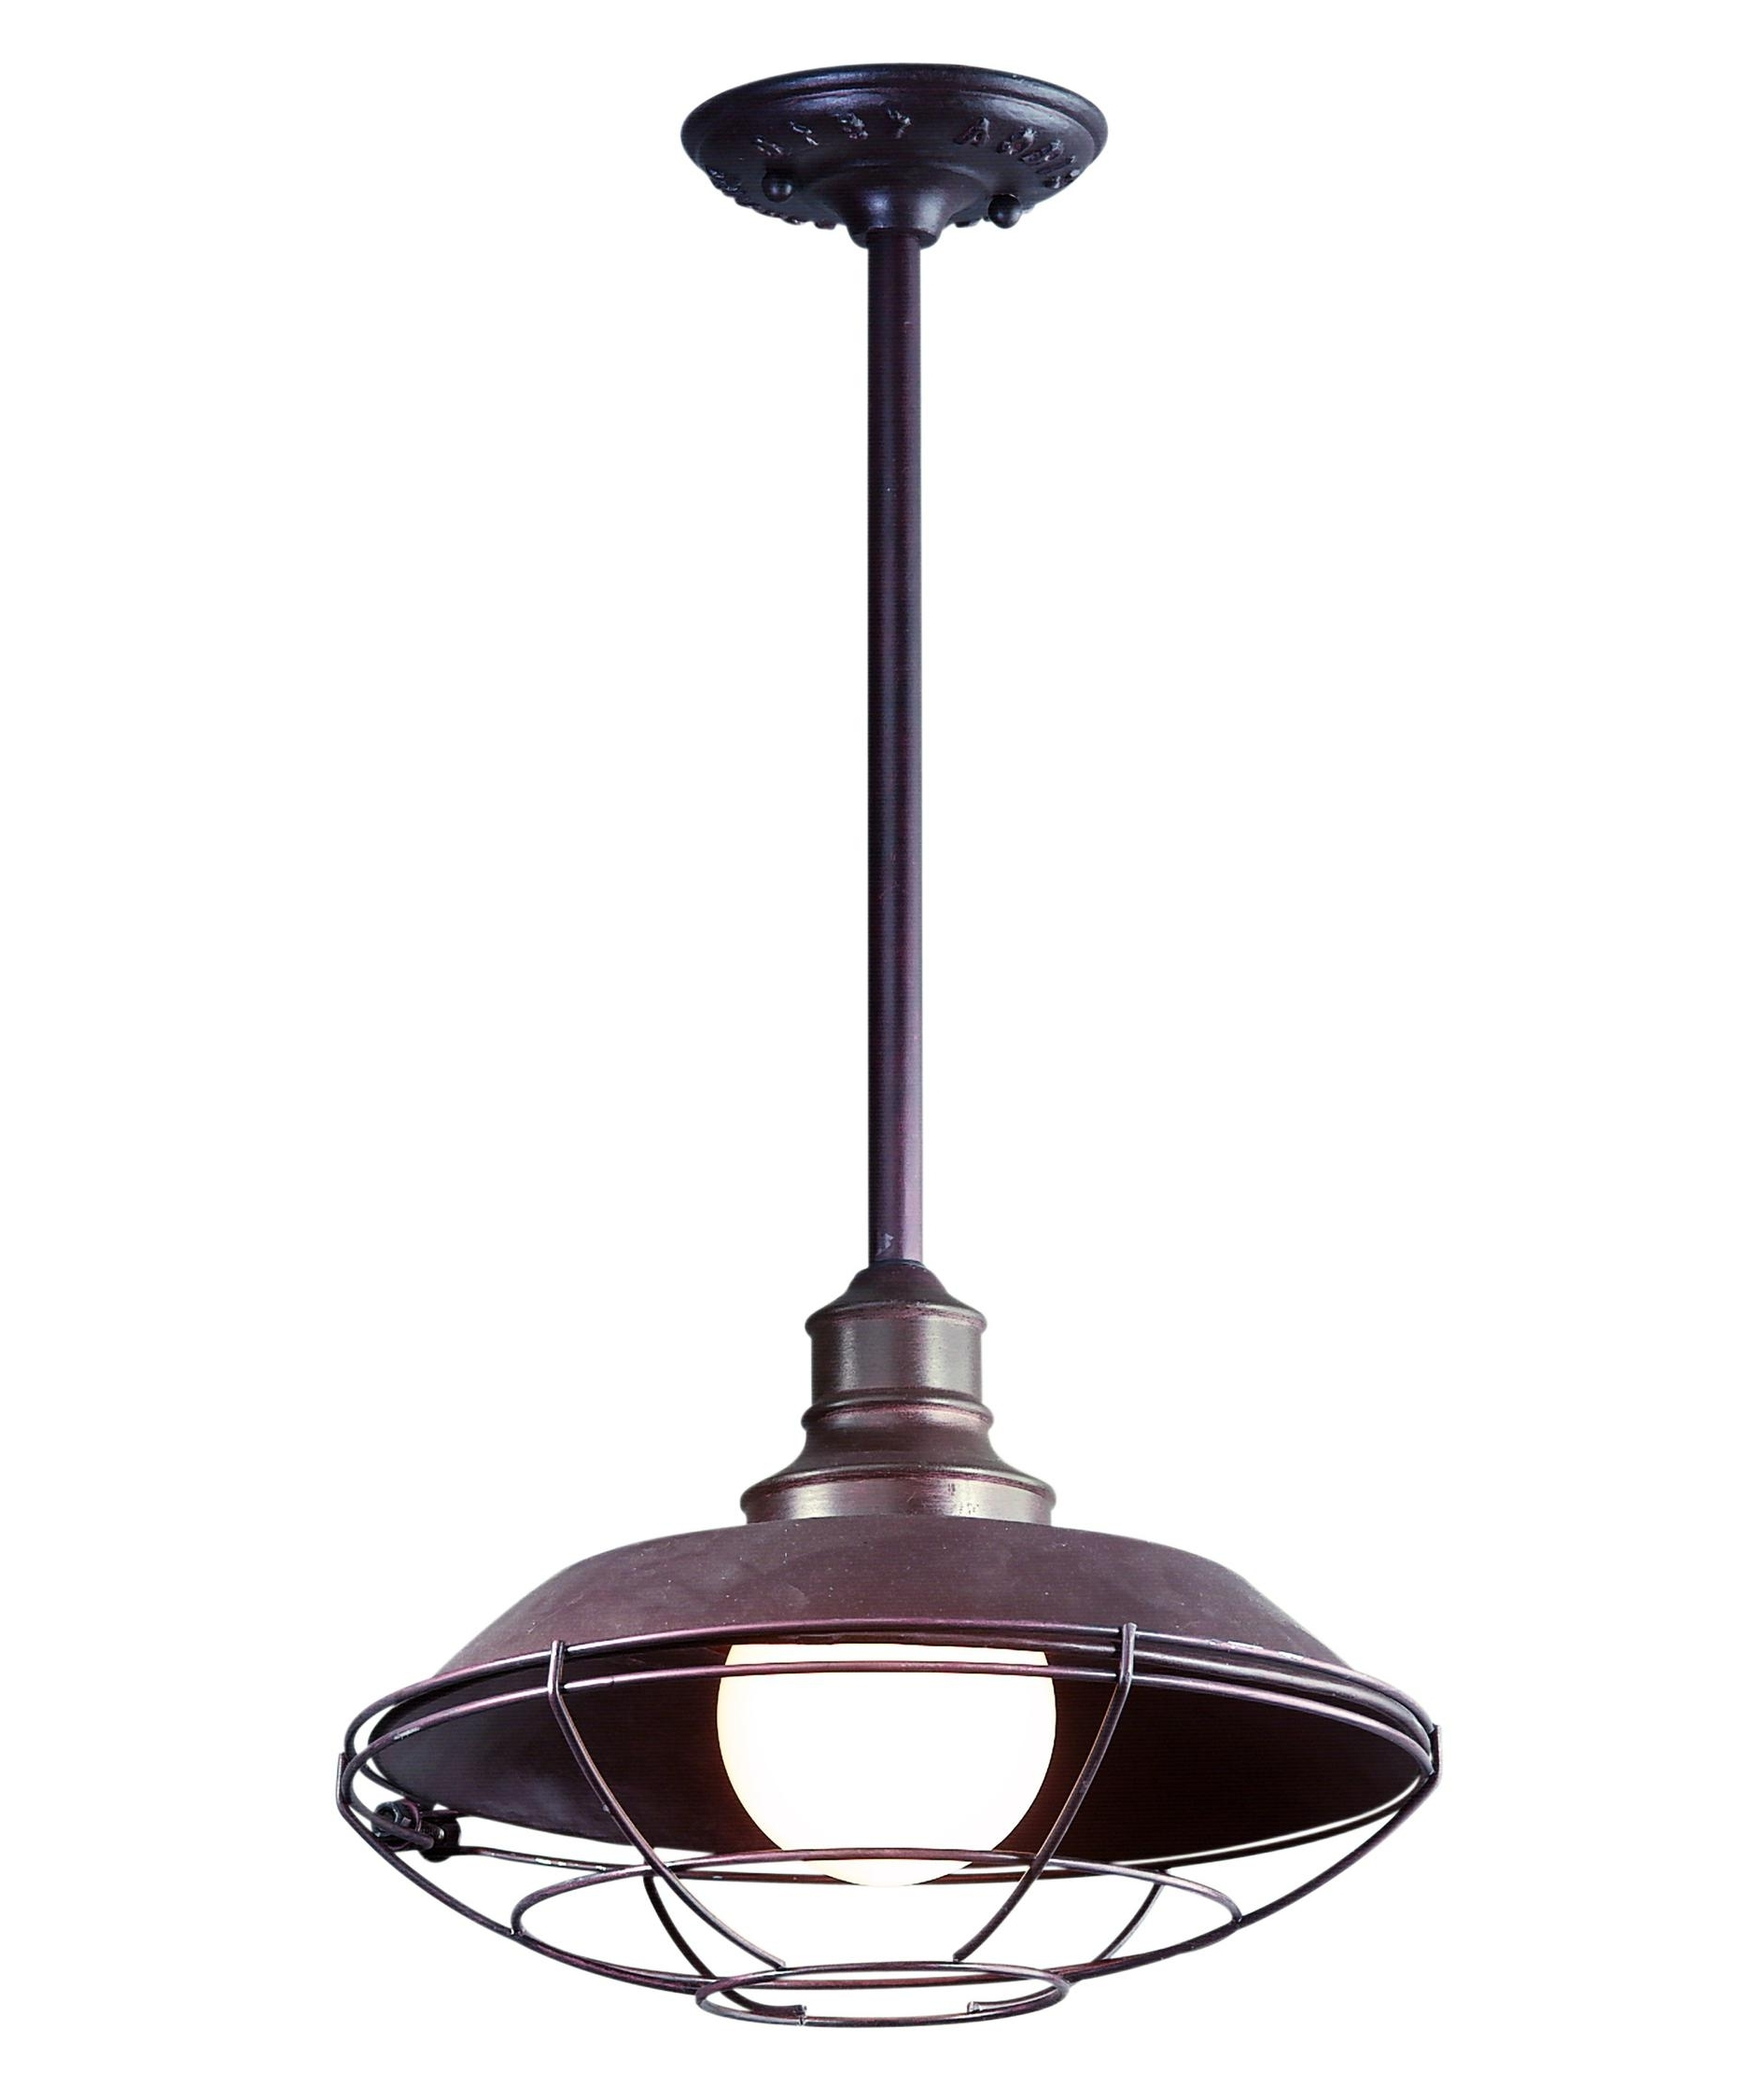 Widely Used Outdoor Hanging Lamps At Amazon Within Troy Lighting F9273 Circa 1910 12 Inch Wide 1 Light Outdoor Hanging (View 20 of 20)